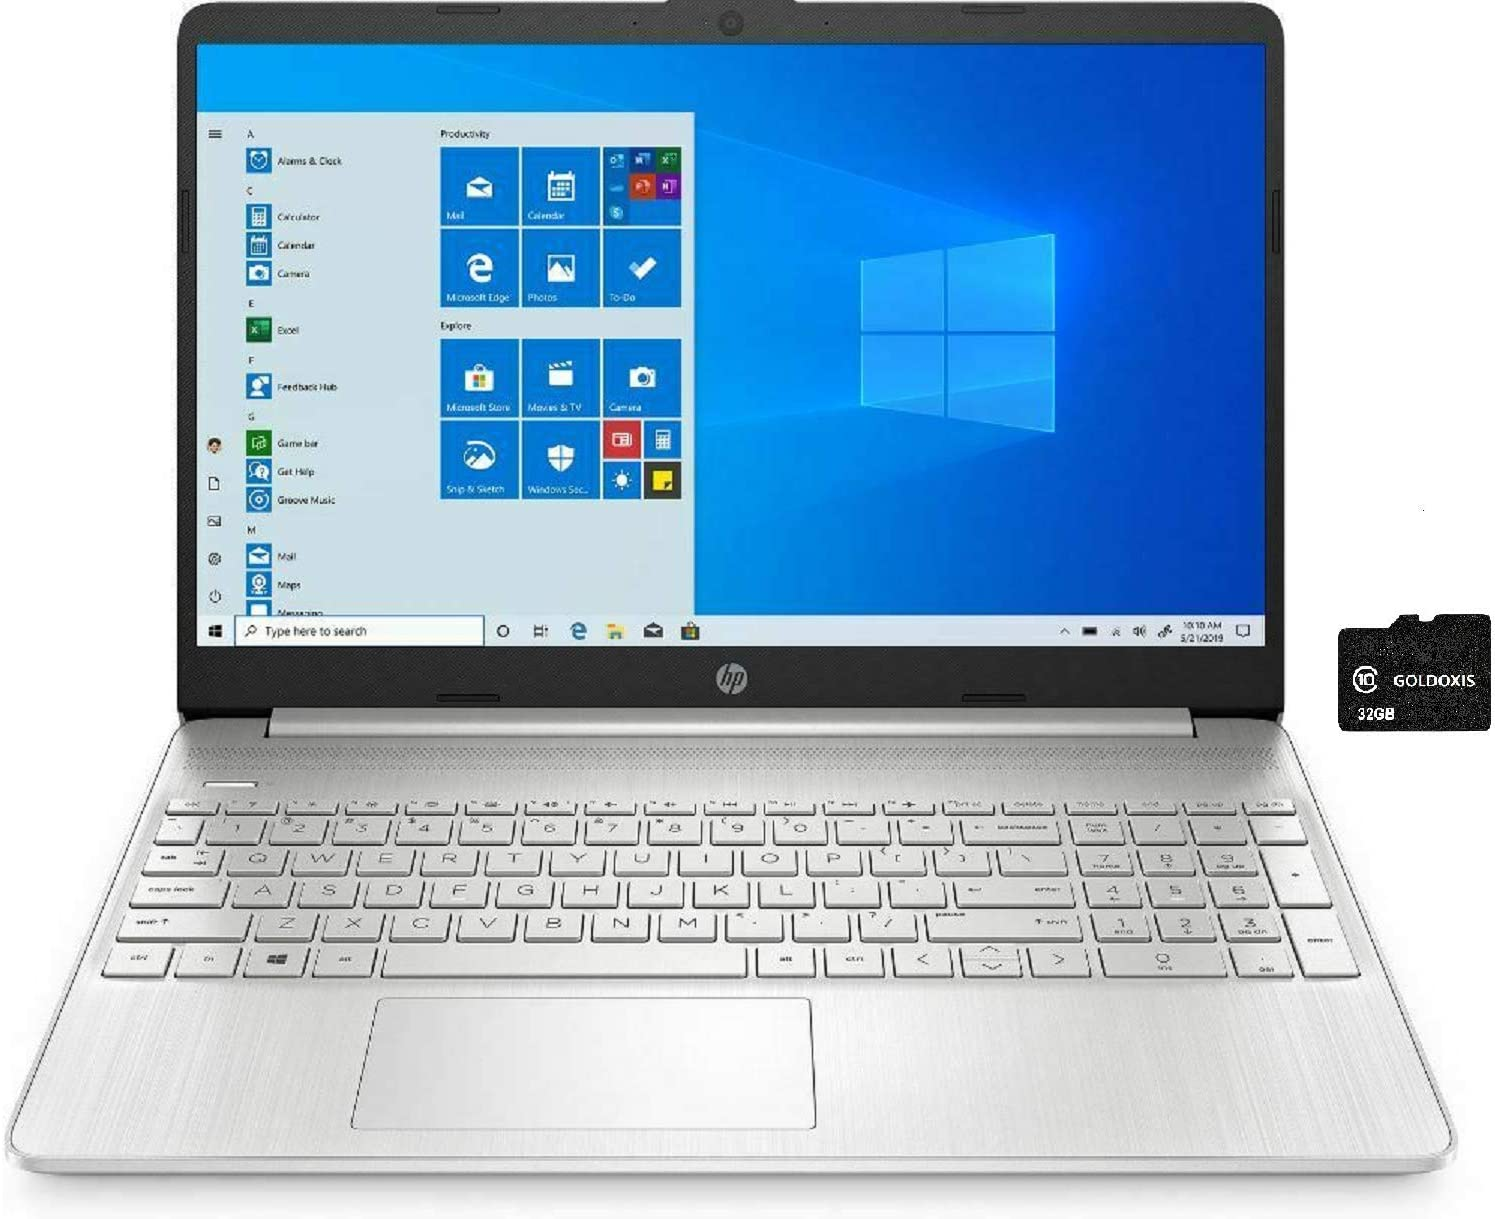 2021 HP 15.6 inch FHD IPS Touchscreen Intel Core i7-1065G7 1.30 GHz up to 3.90 GHz 12GB DDR4 2666 MHz 512GB SSD Windows 10 Home, 64-bit with GOLDOXIS Card